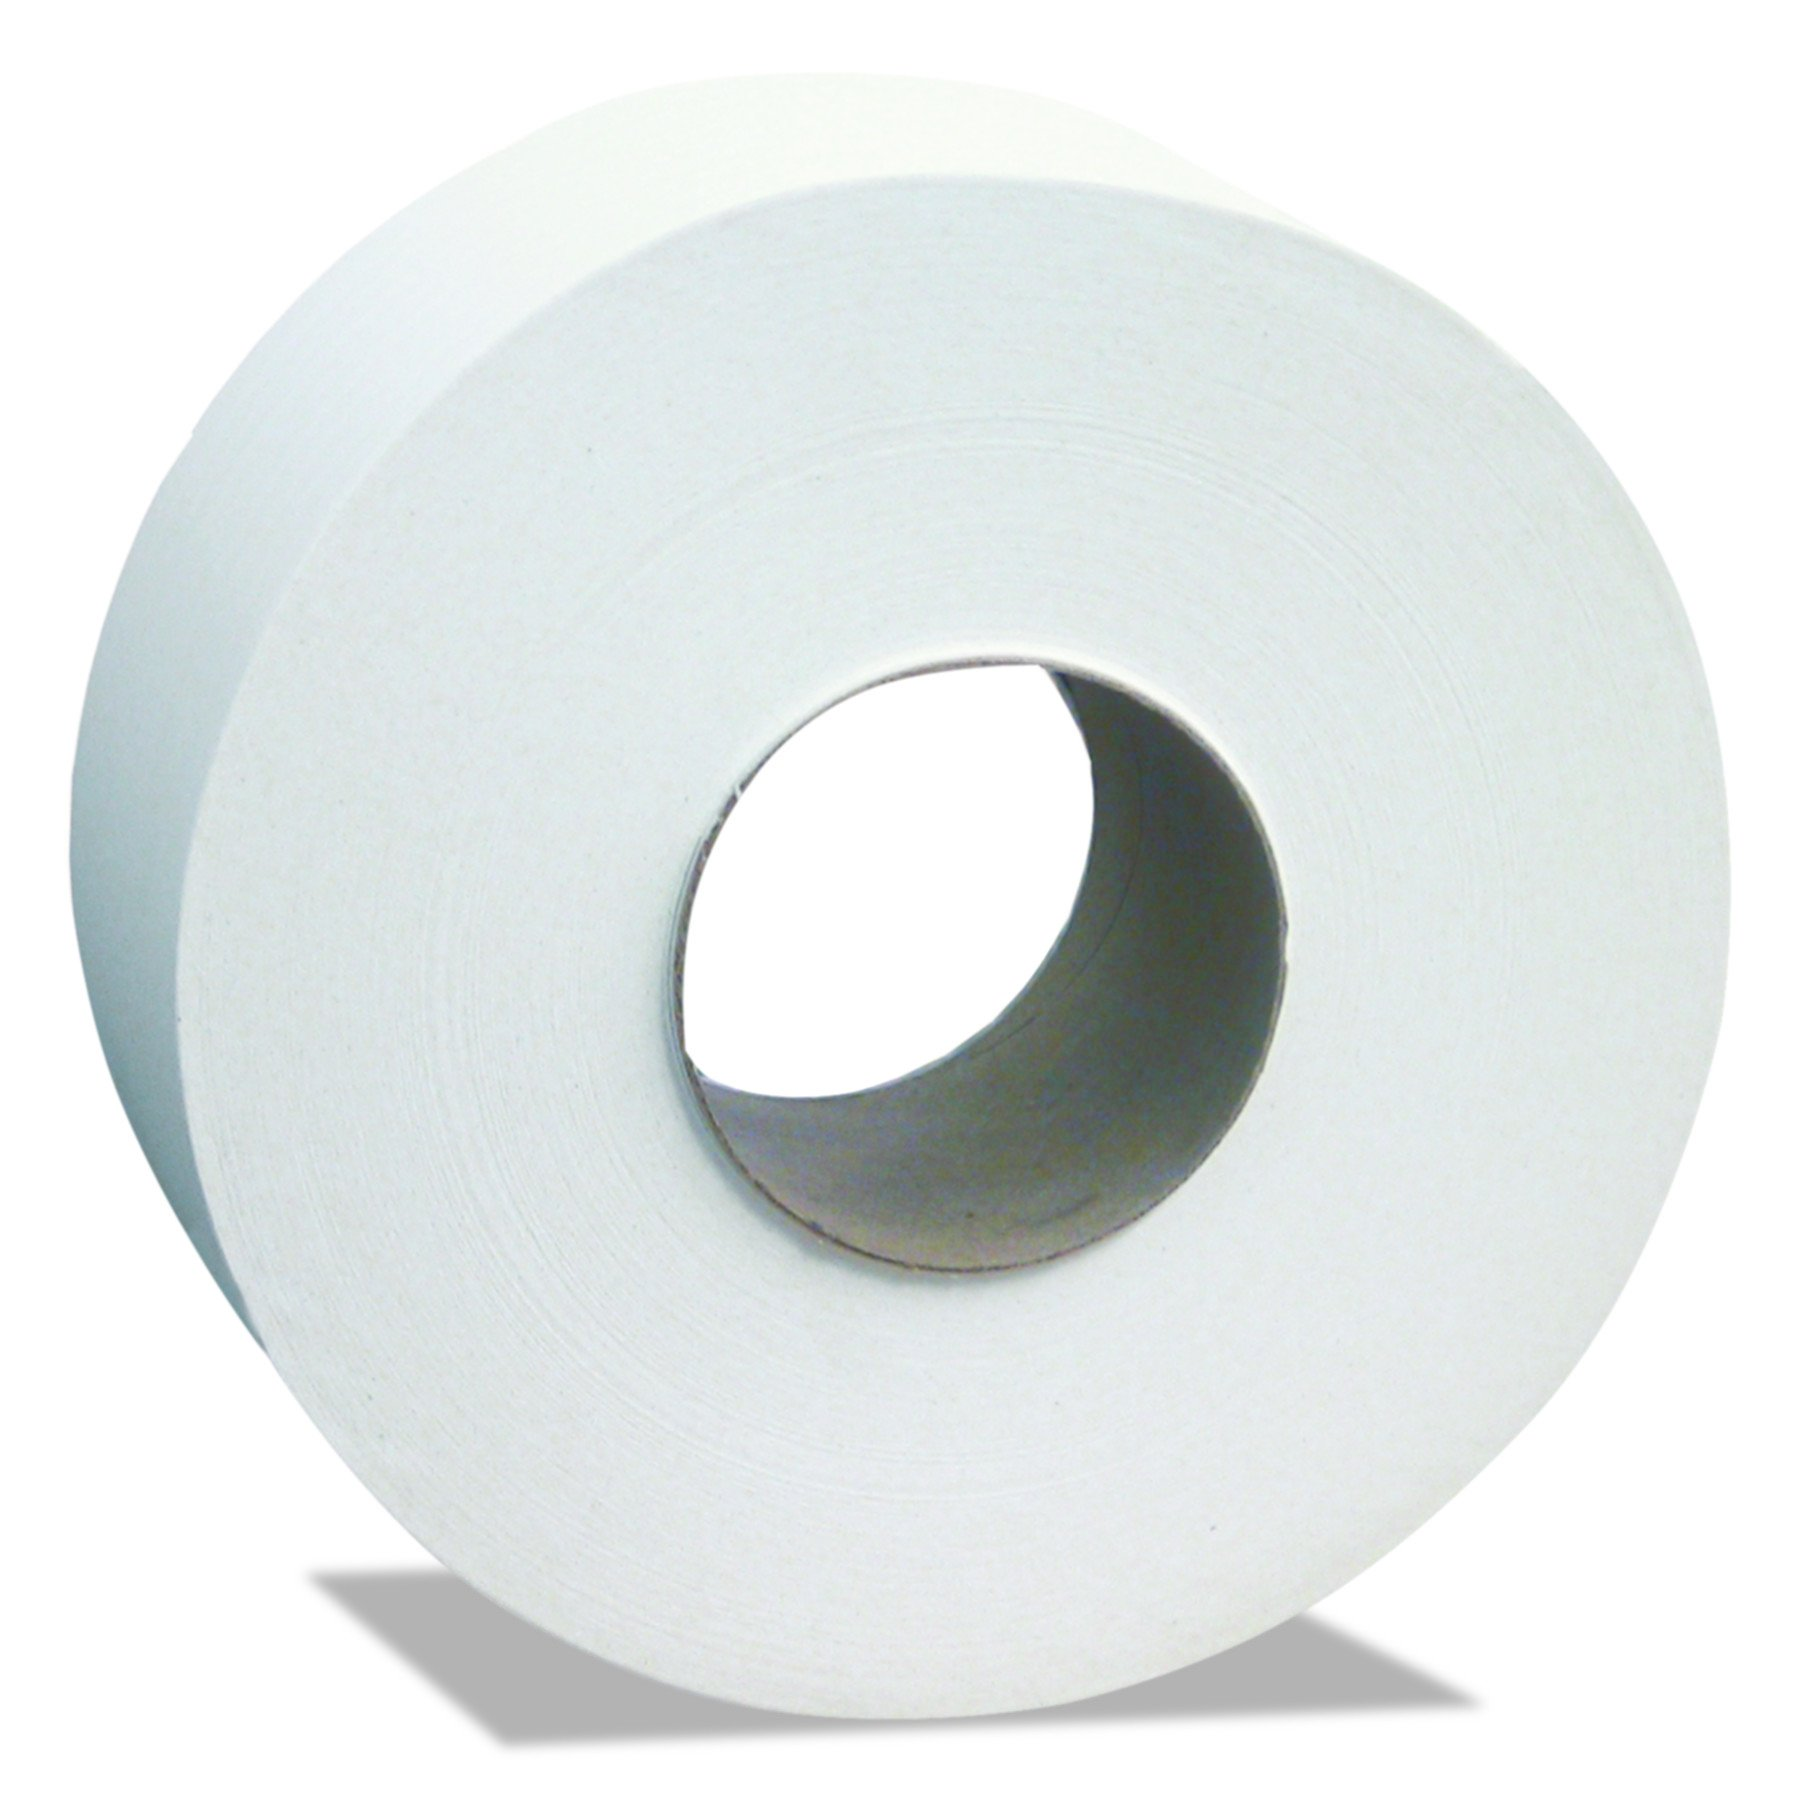 Cascades B240 North River Jumbo Roll Tissue, 2-Ply, White, 3 1/2'' x 1000' (Case of 12 Rolls)